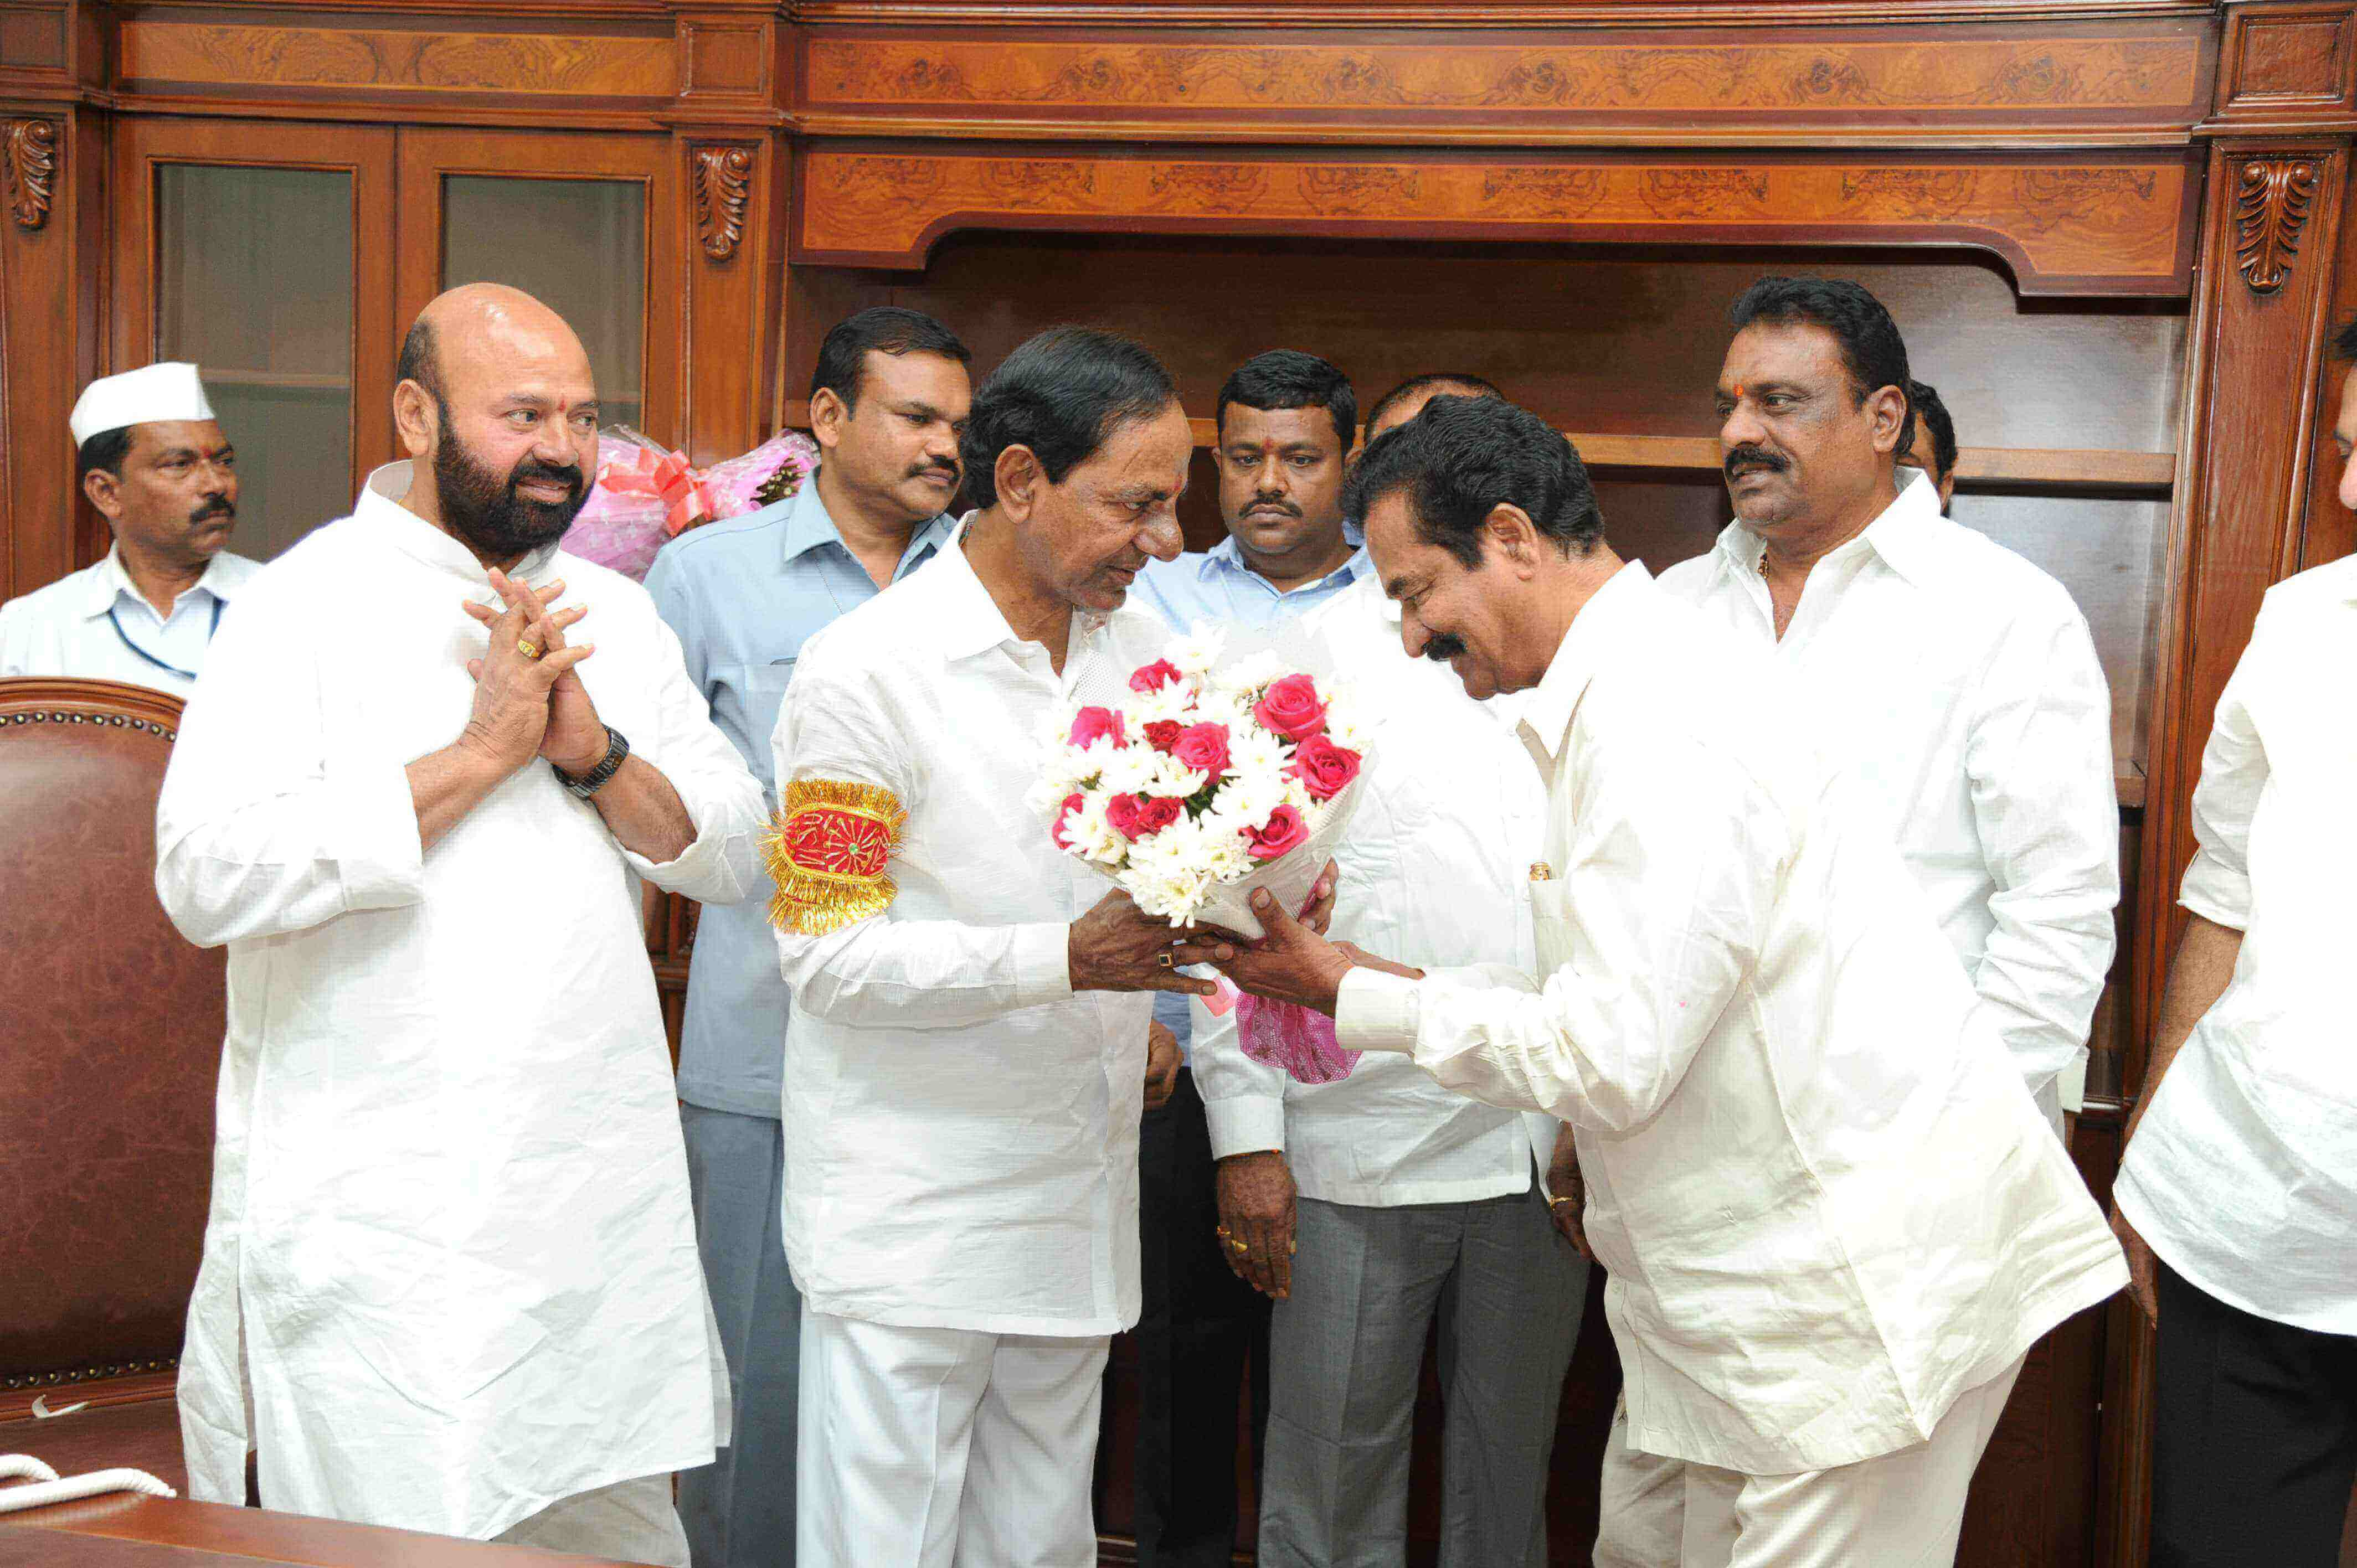 Several Ministers, Members of the Parliament, Members of the Legislative Assembly, Council, Government Advisors, officials and prominent personalities have conveyed their birthday greetings to Telangana CM K Chandrashekhar Rao on. 17.02.2017.